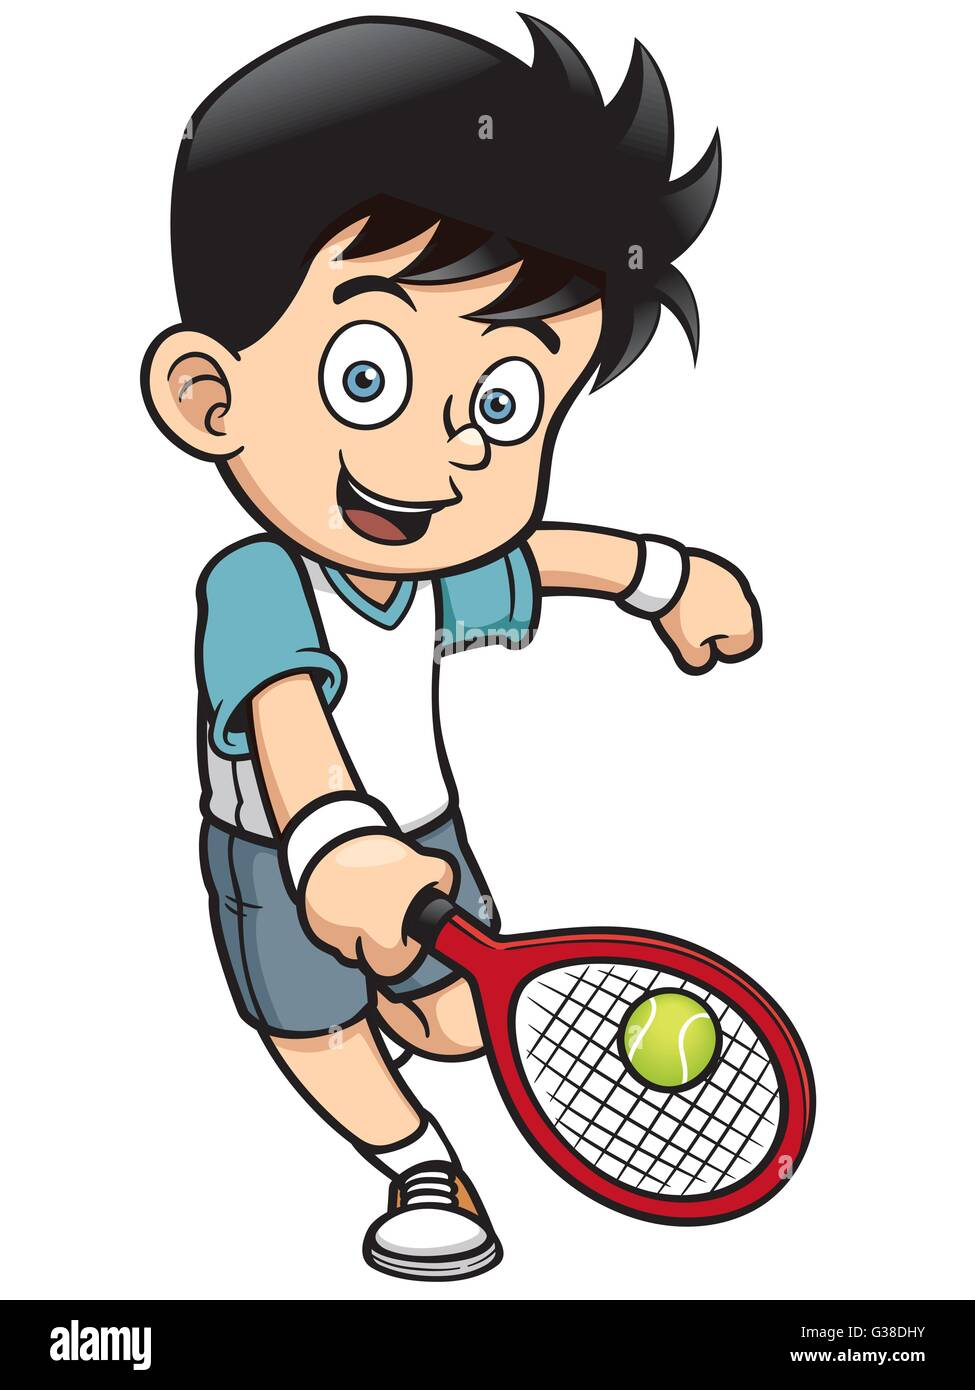 Cartoon Characters Playing Sports : Vector illustration of cartoon tennis player stock